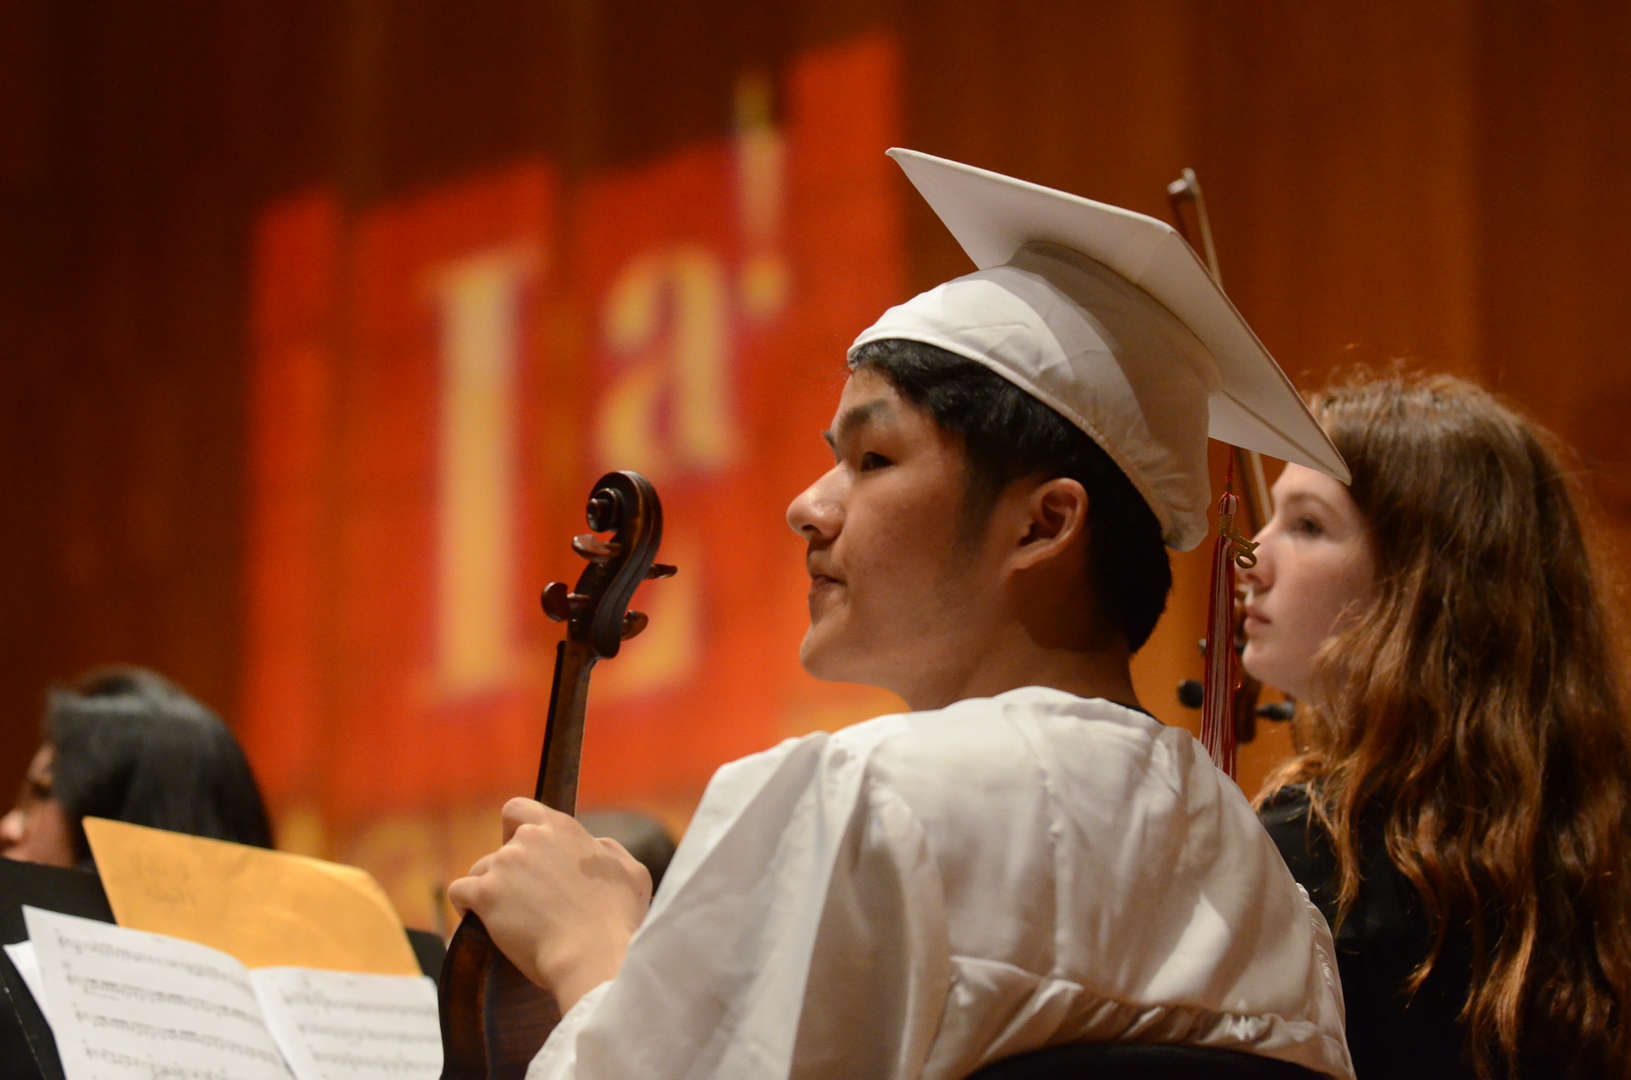 Instrumentalist in Cap and Gown at Graduation